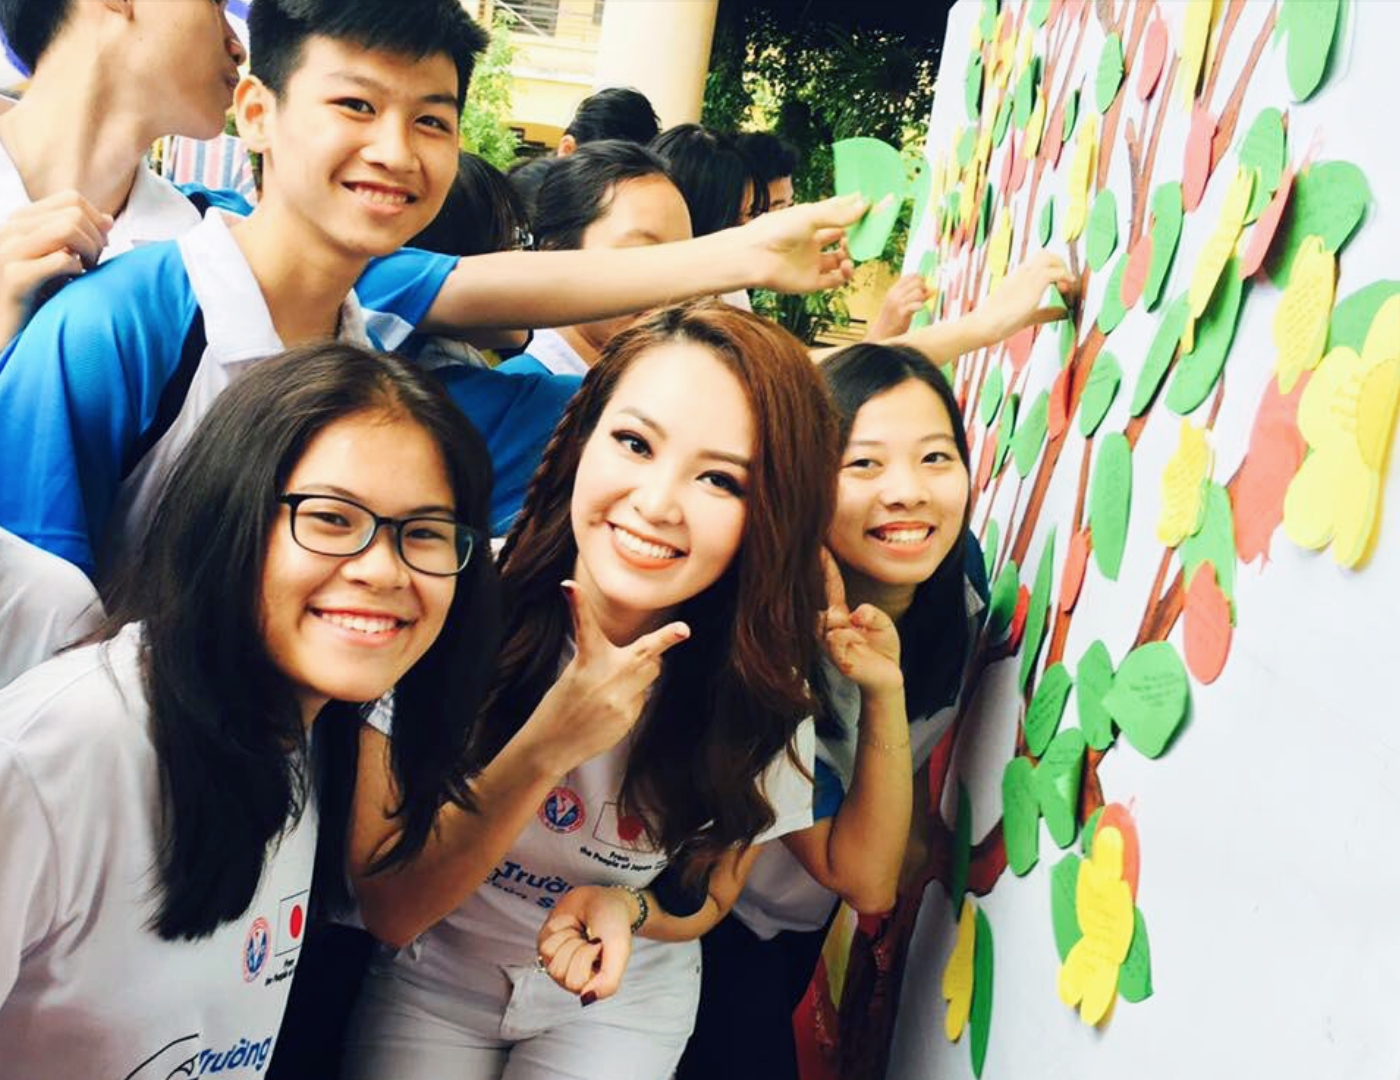 Viet Nam to Integrate Disaster Prevention Education into the